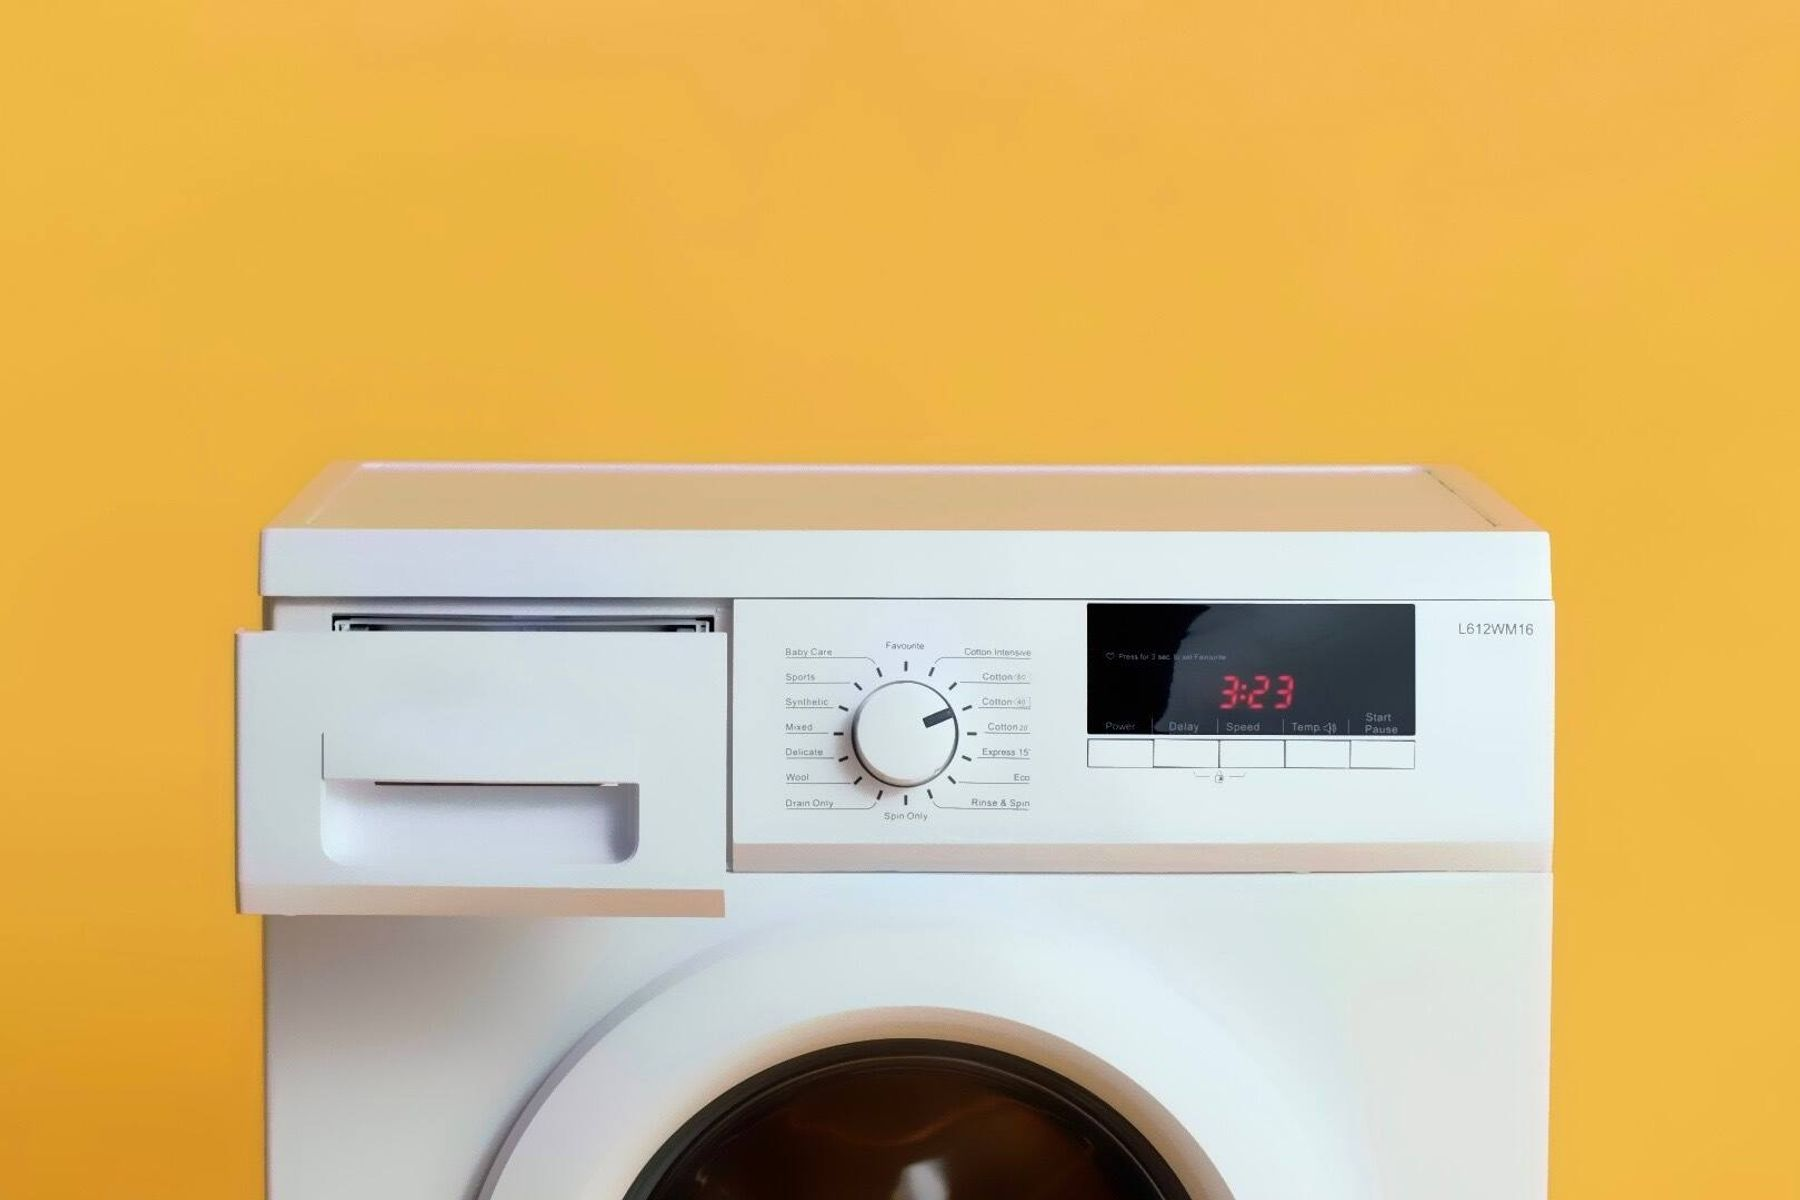 a white washing machine in front of a yellow wall